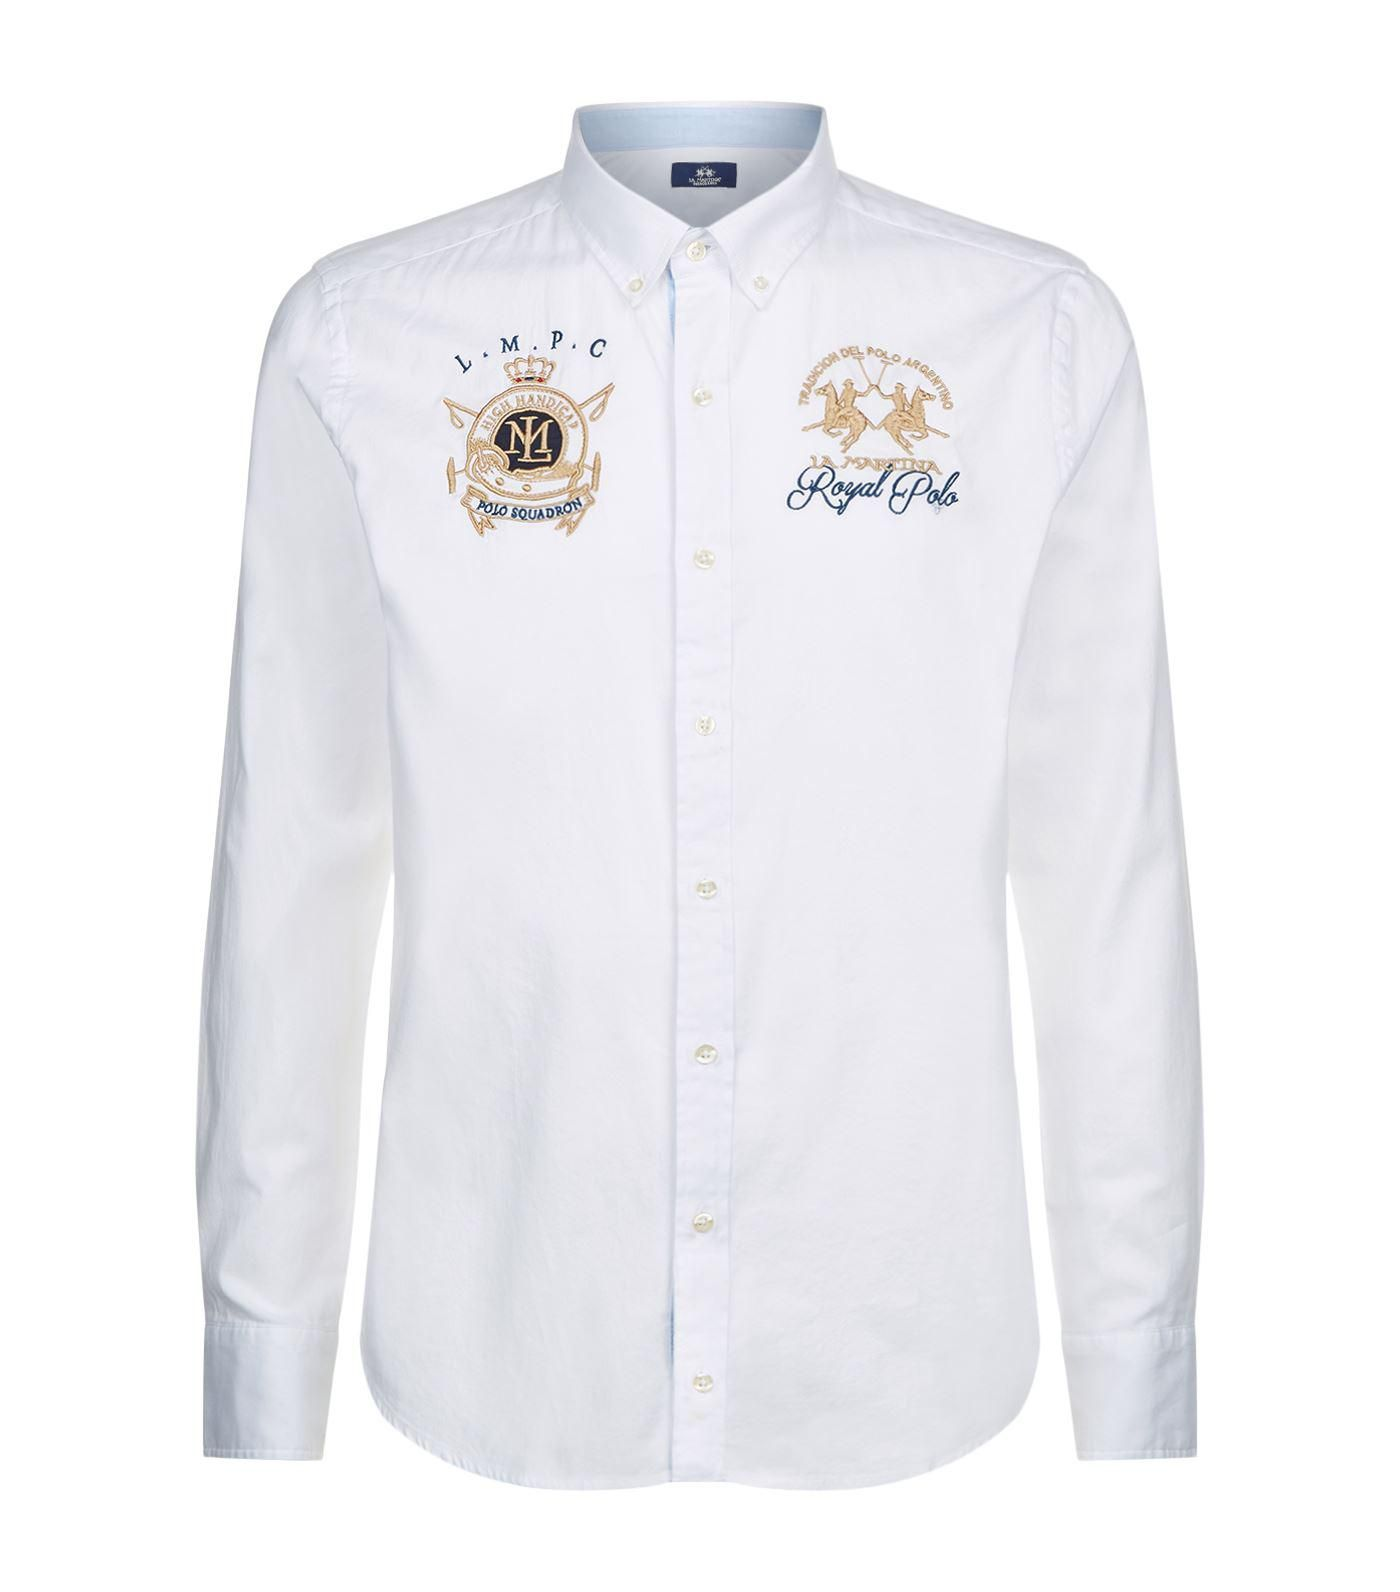 e27d2560 La Martina Shirts - fashionable polo-style apparel LA MARTINA SHIRTS  gallery CGRTZRK